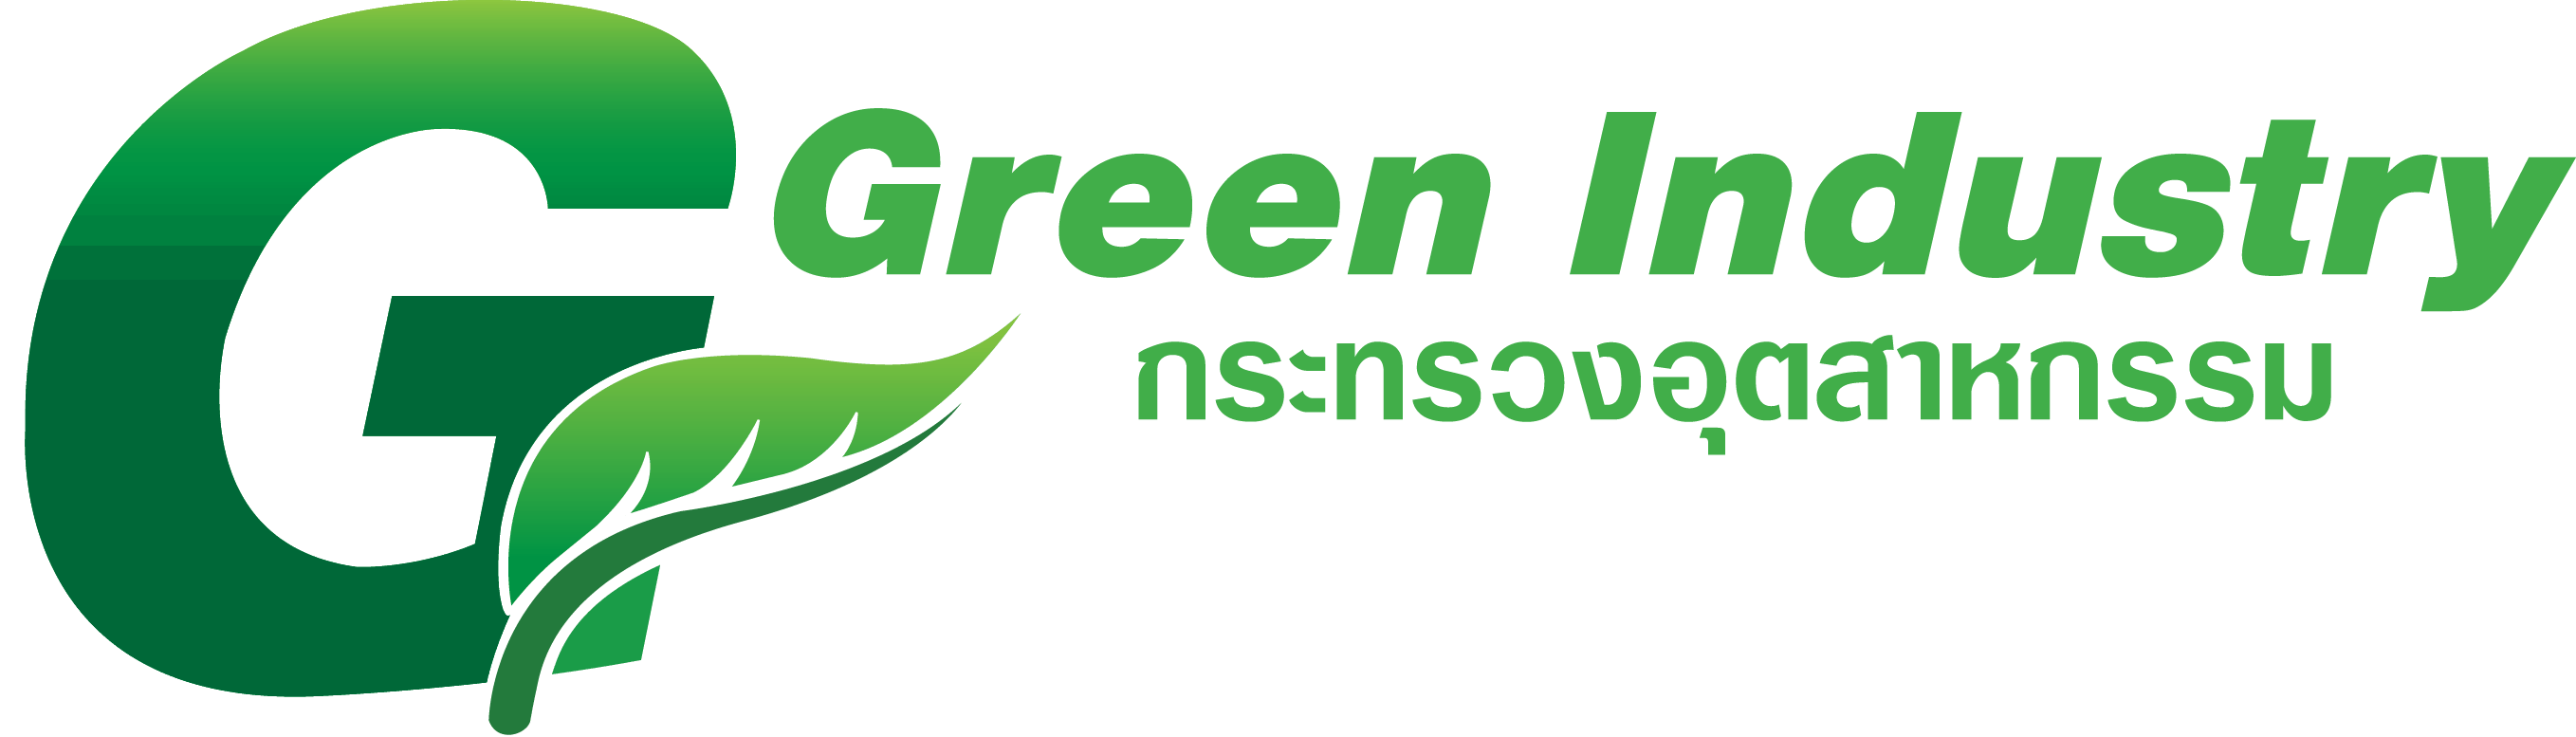 Green Industry Logo